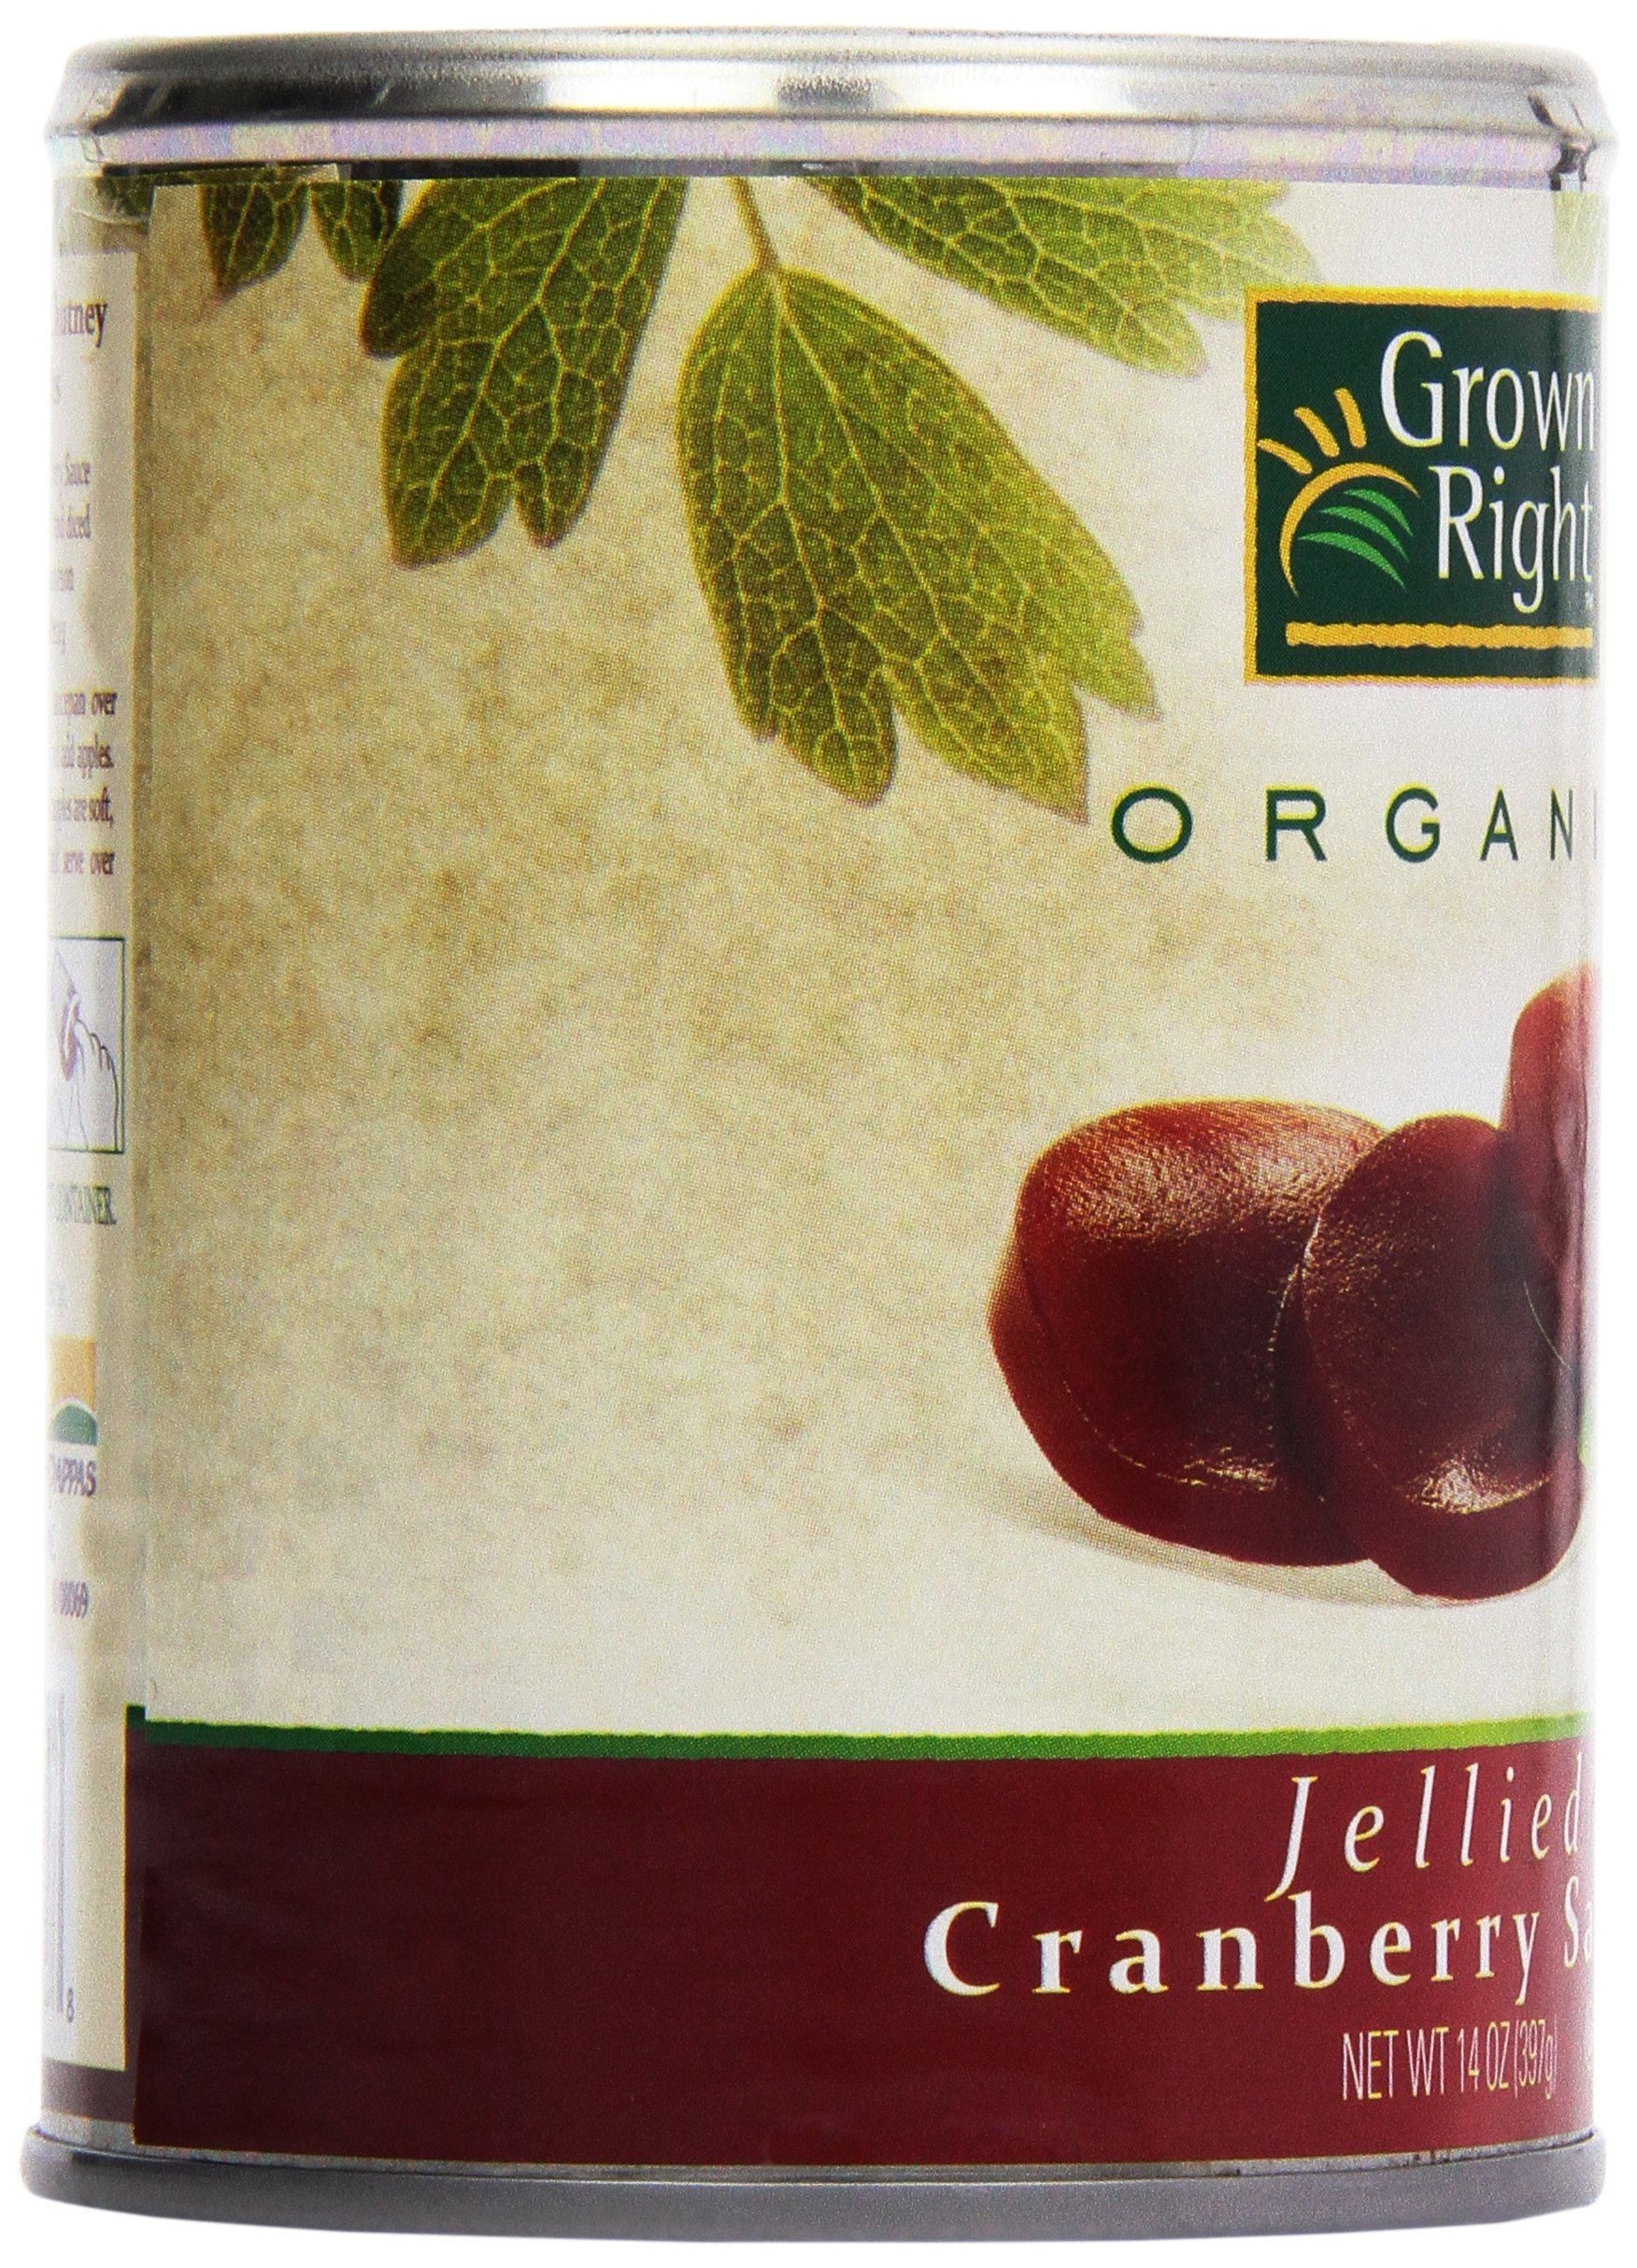 Grown Right Organic Jellied Cranberry Sauce, 16 oz by Grown Right (Image #8)